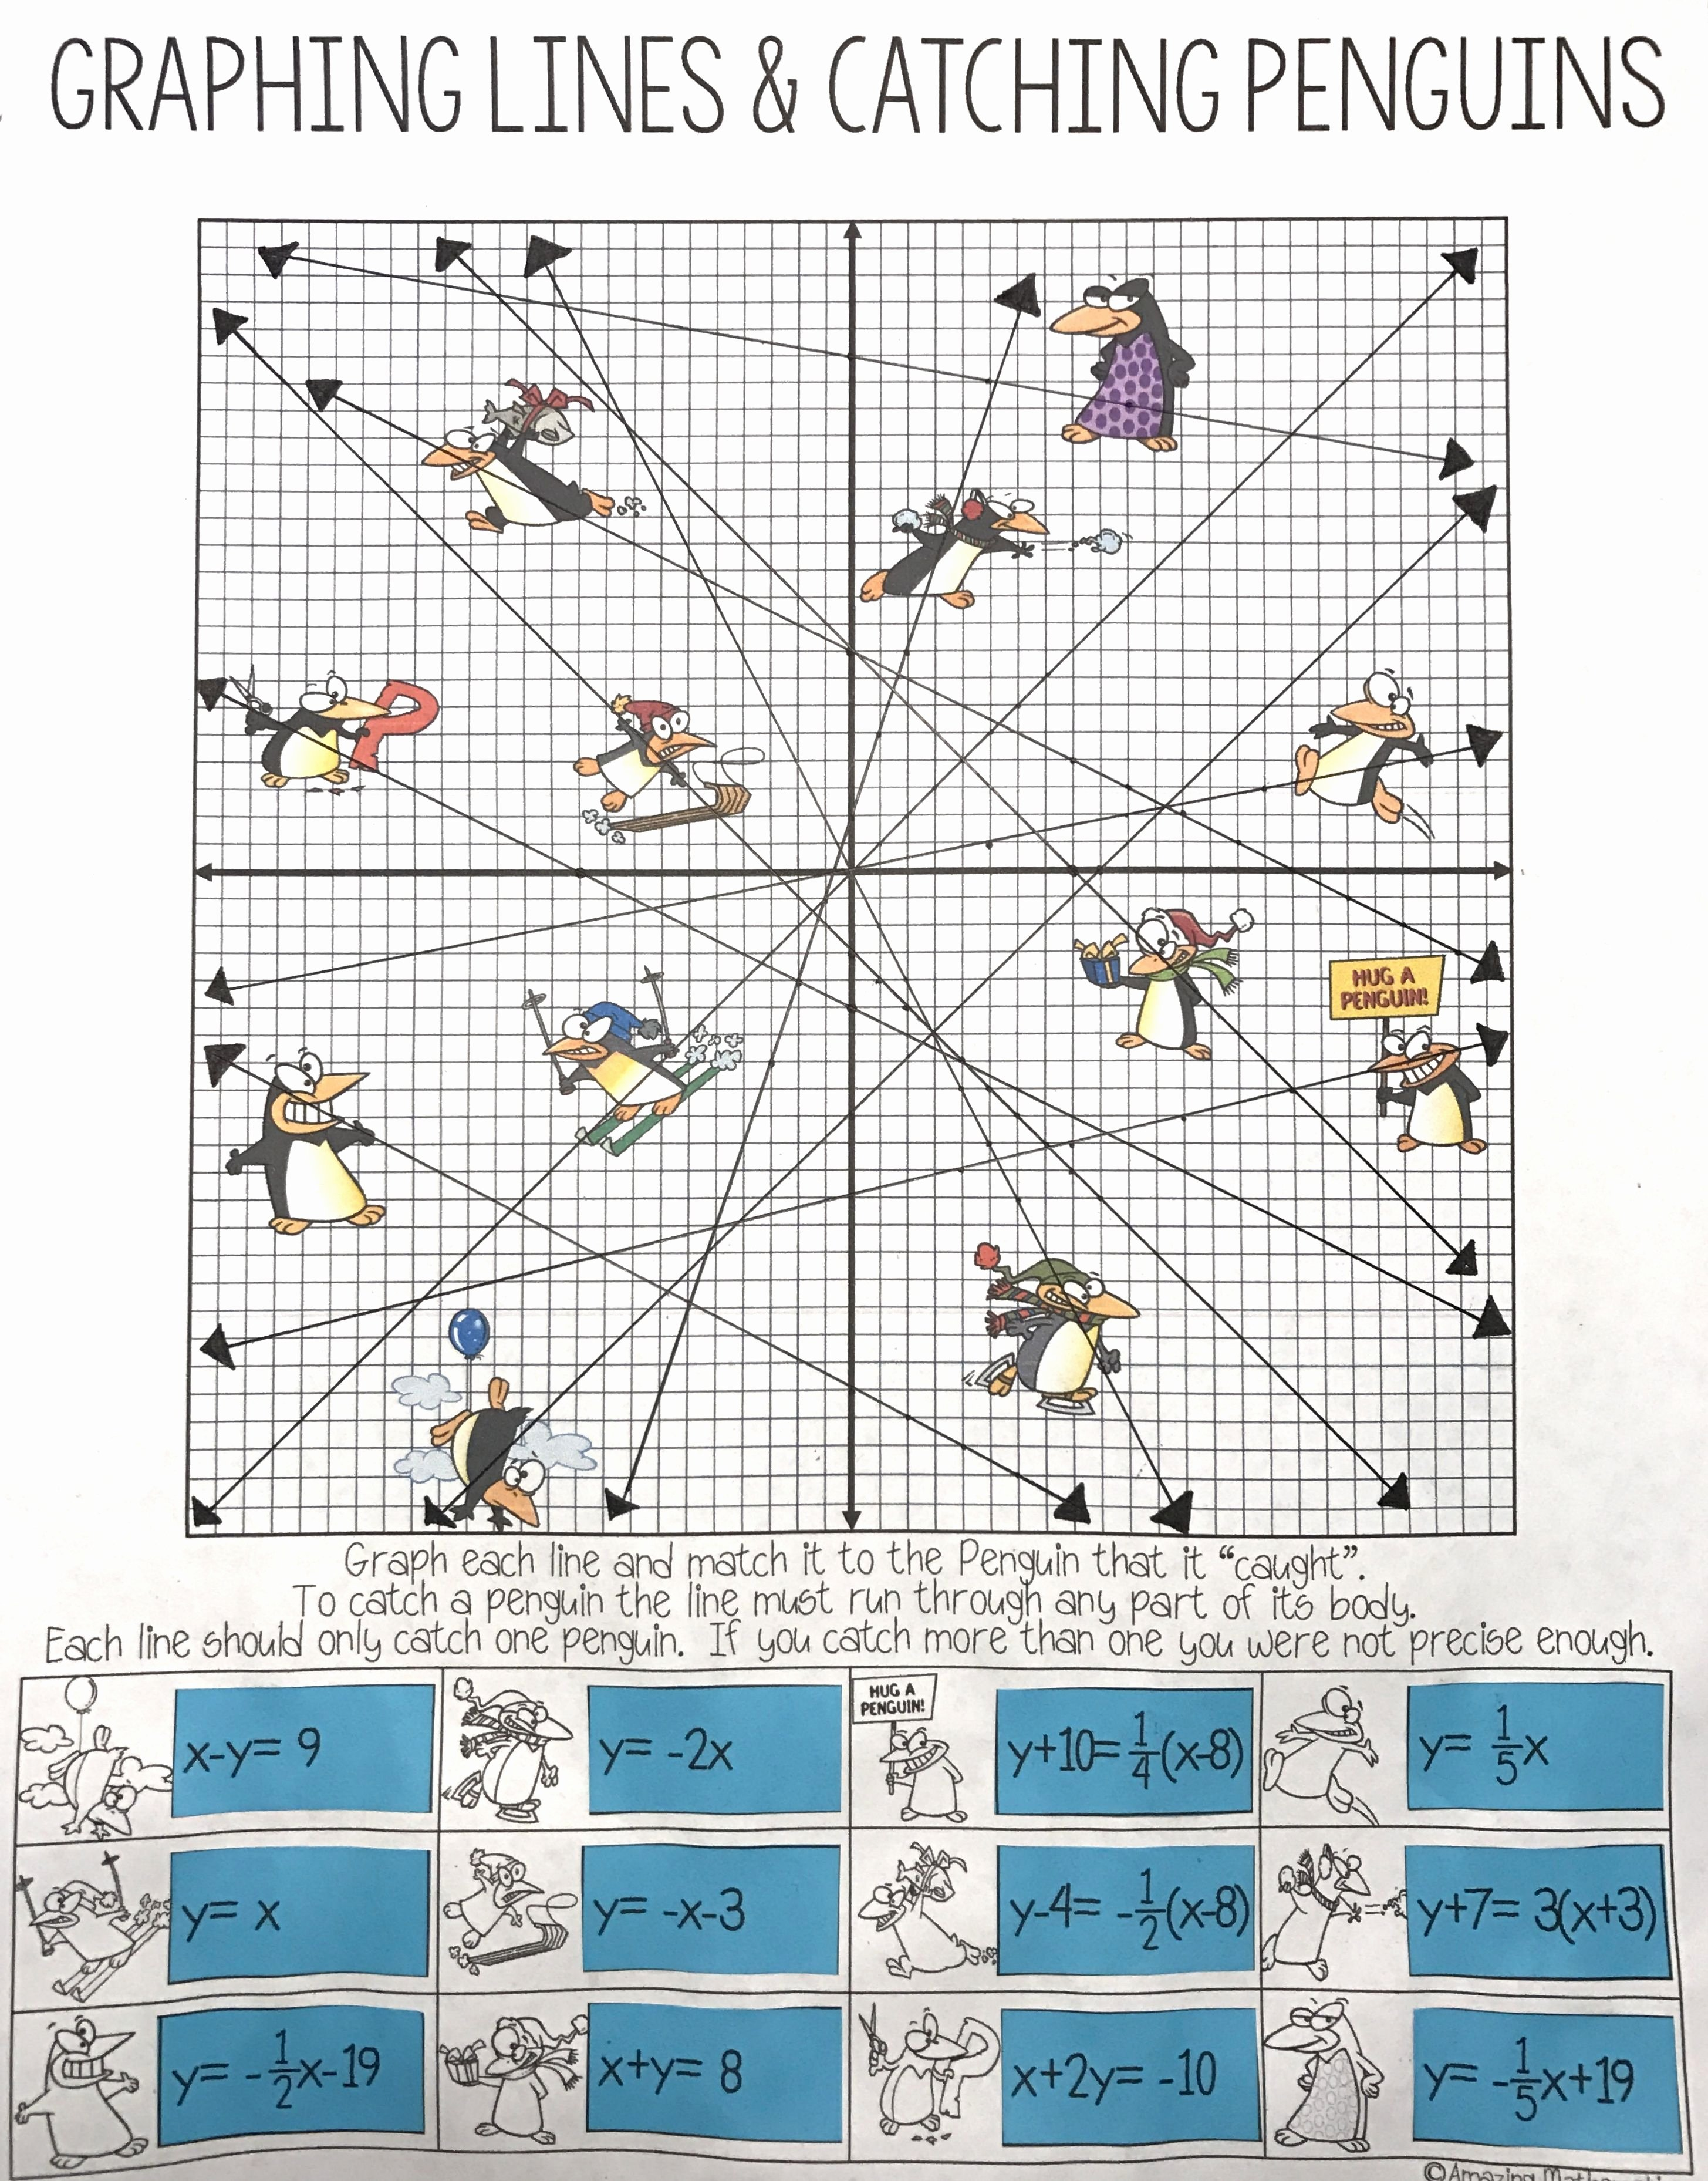 Graphing Linear Equations Worksheet Best Of Graphing Lines & Penguins All 3 forms